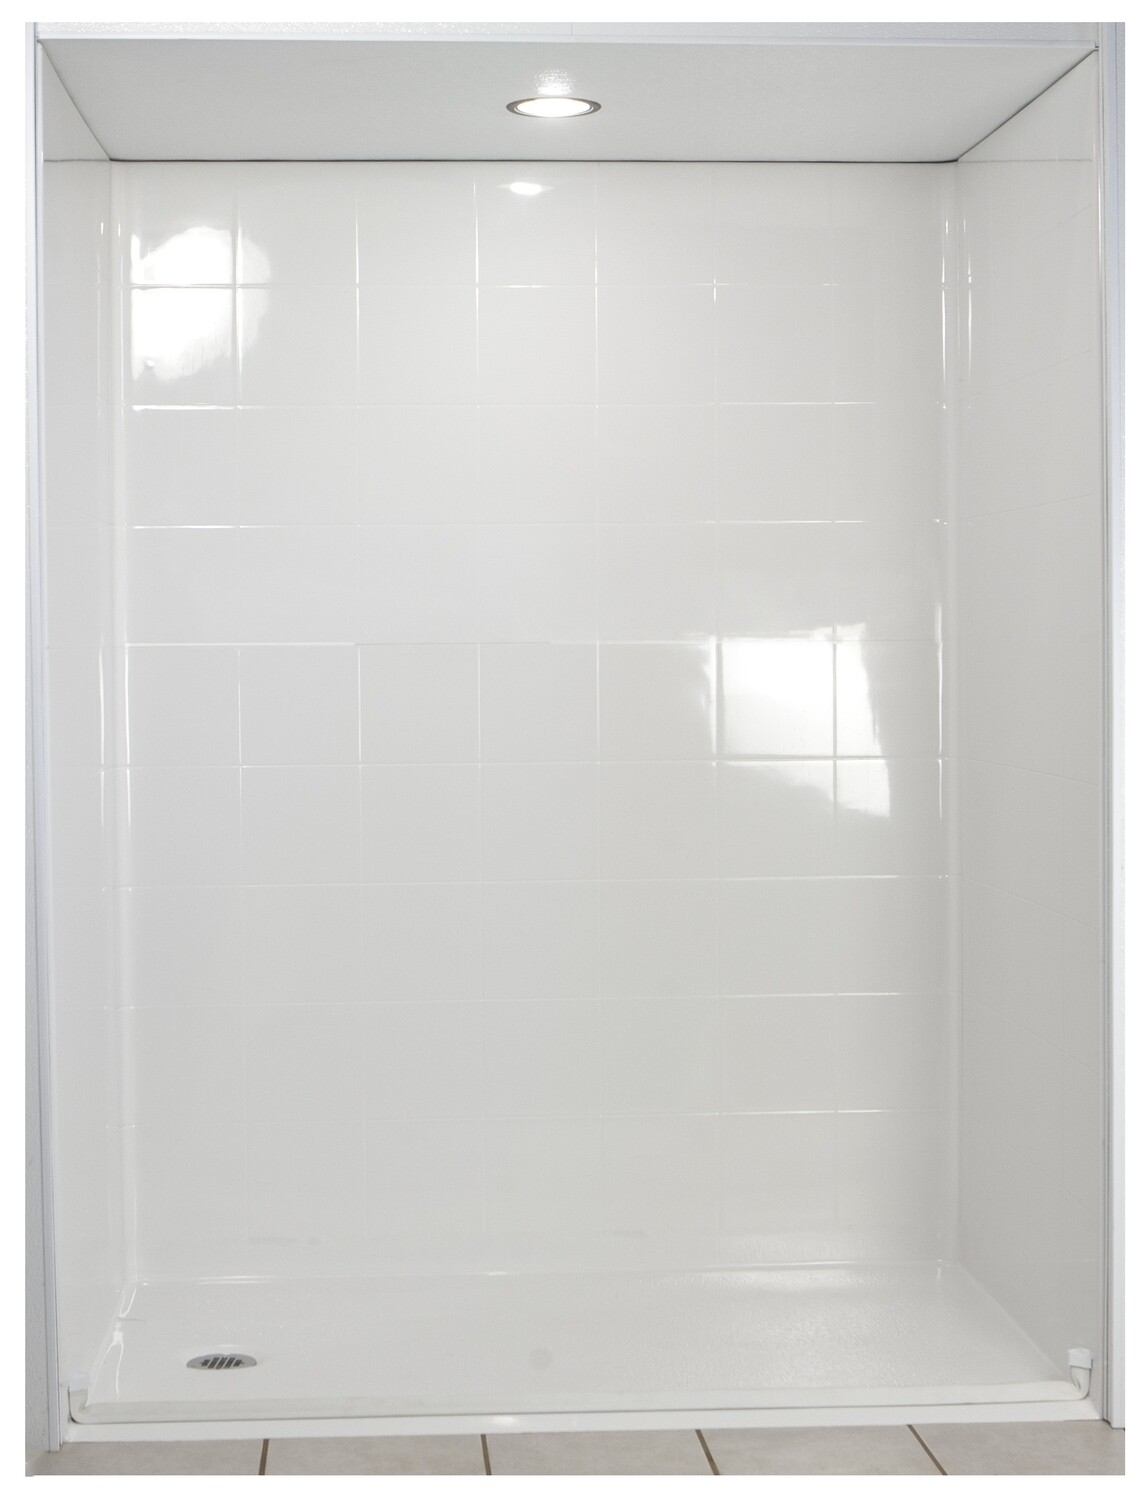 Standard Multi-Piece Barrier Free Roll In Shower AcrylX